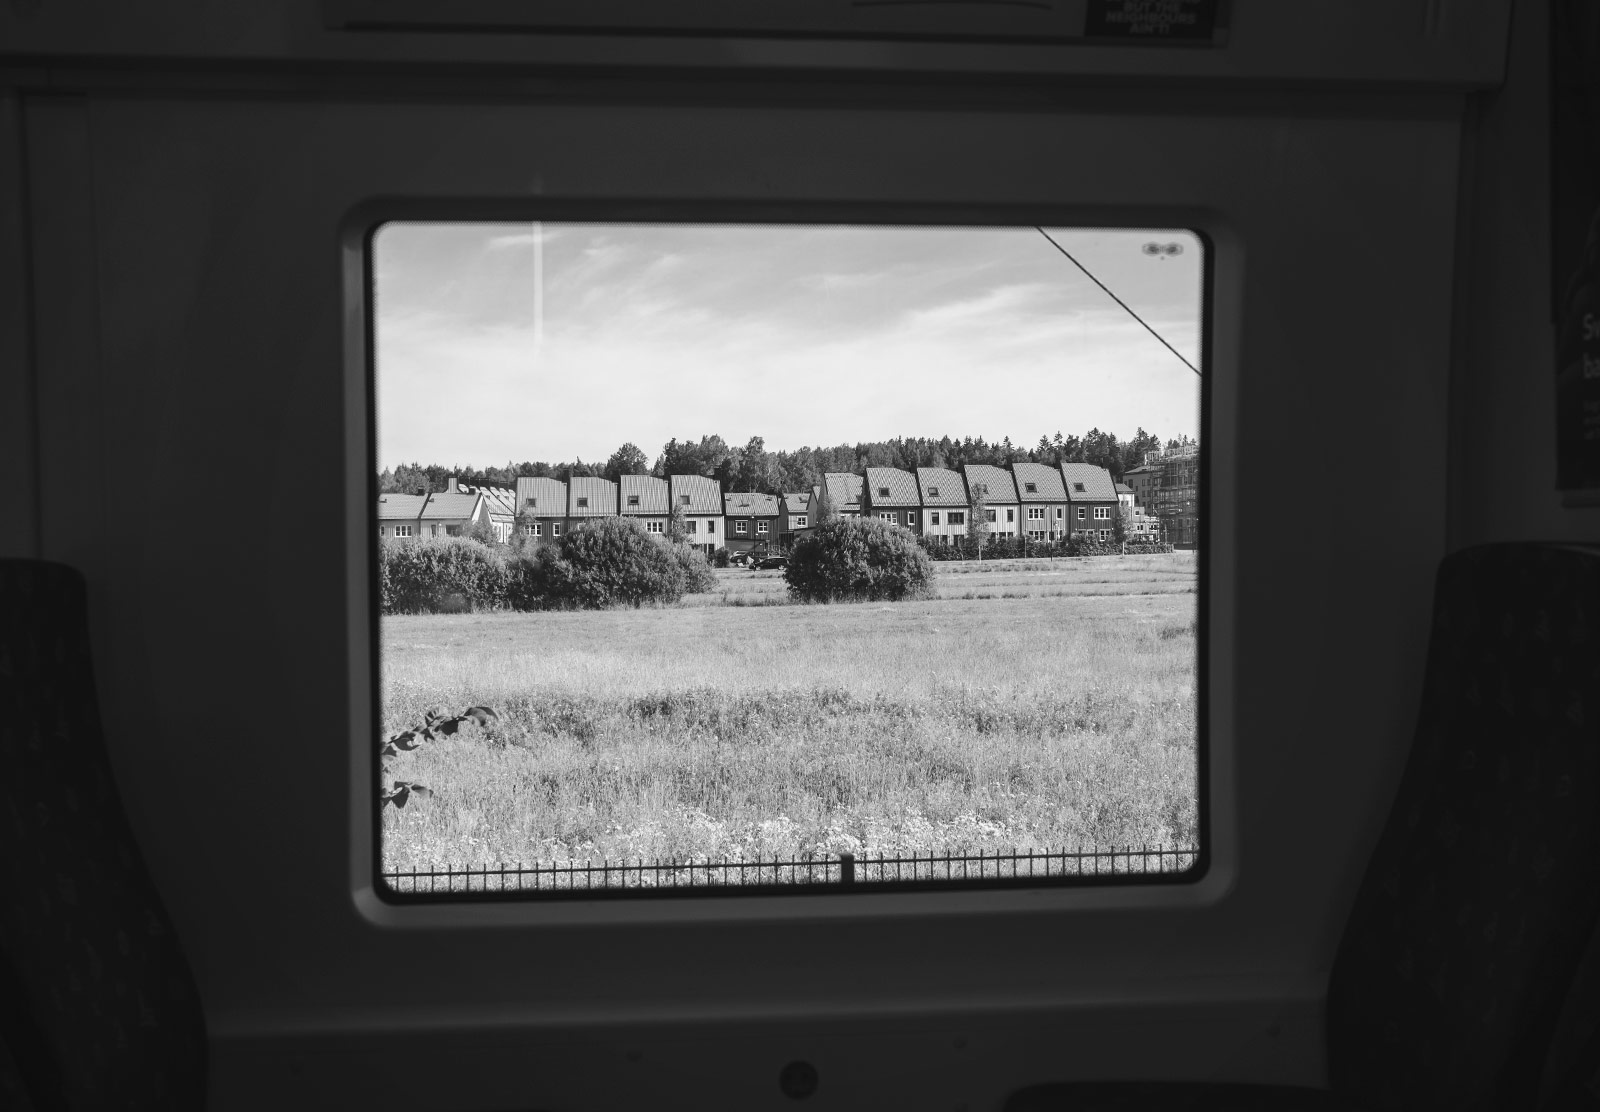 View of houses from window